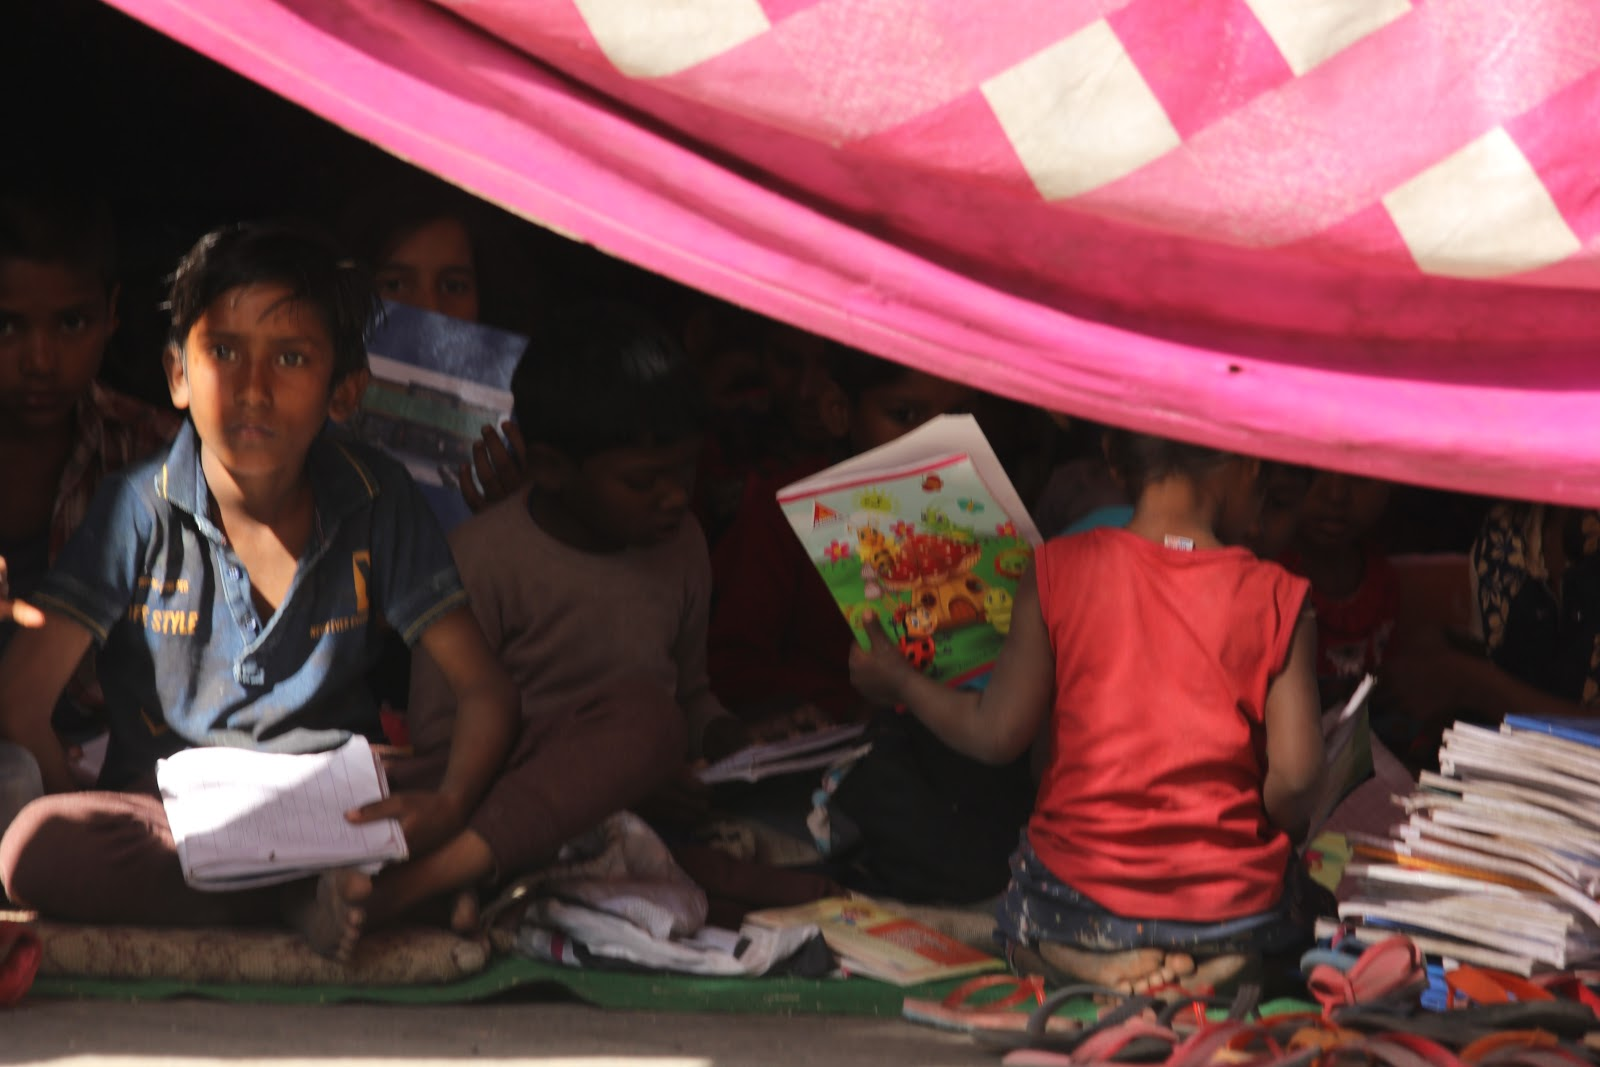 Children assemble in the tent as they wait for their class to begin.